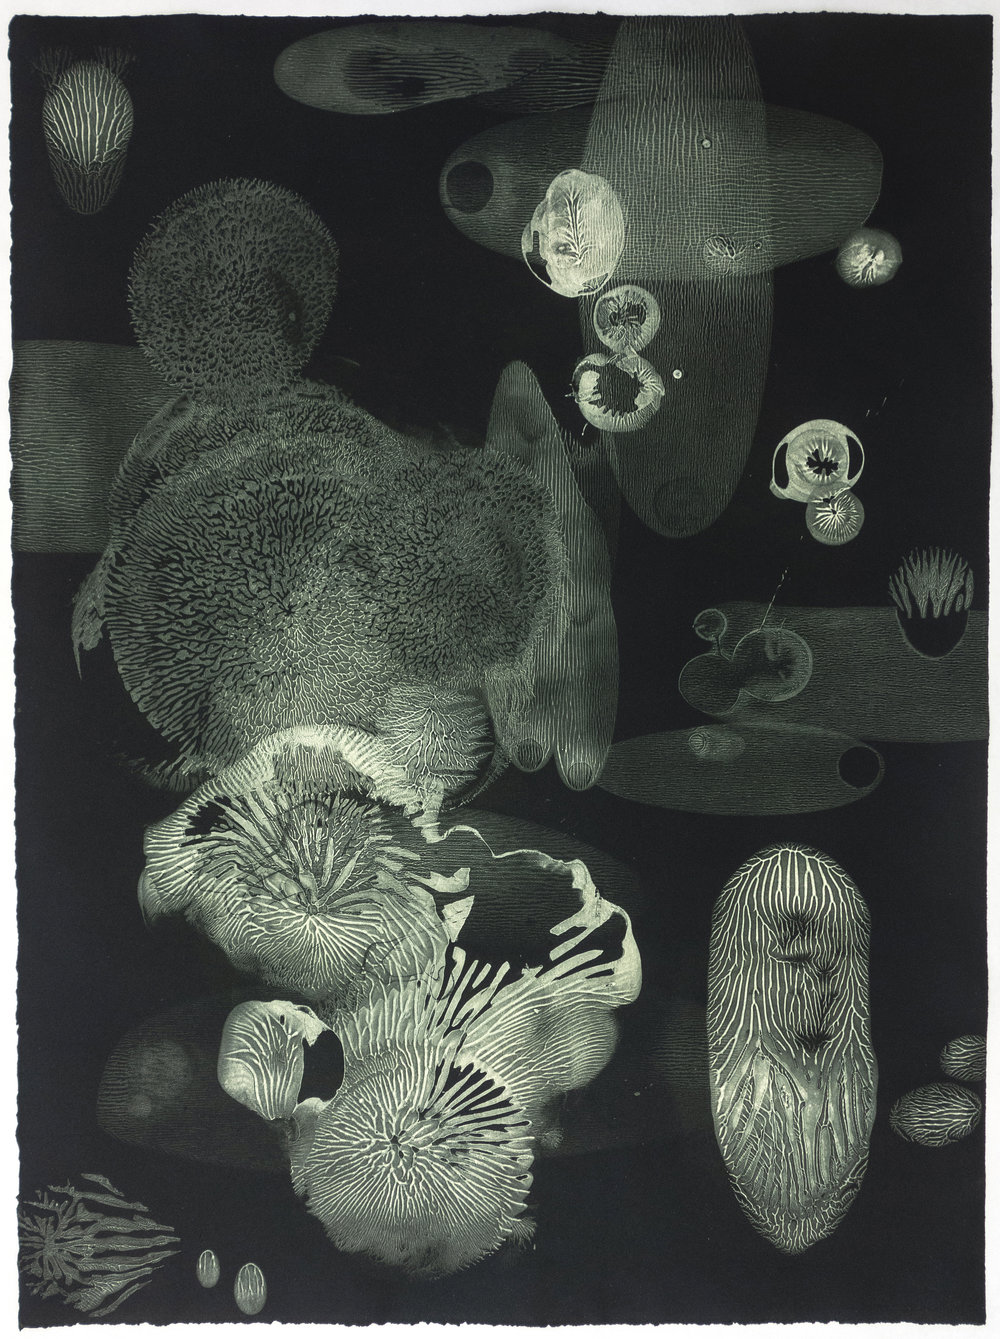 Enrique Leal   Abyssalia XVI  from the series  Abyssalia , 2018 Silk mezzotint Sheet: 30 x 22 inches Printed and published by the artist Edition: 6